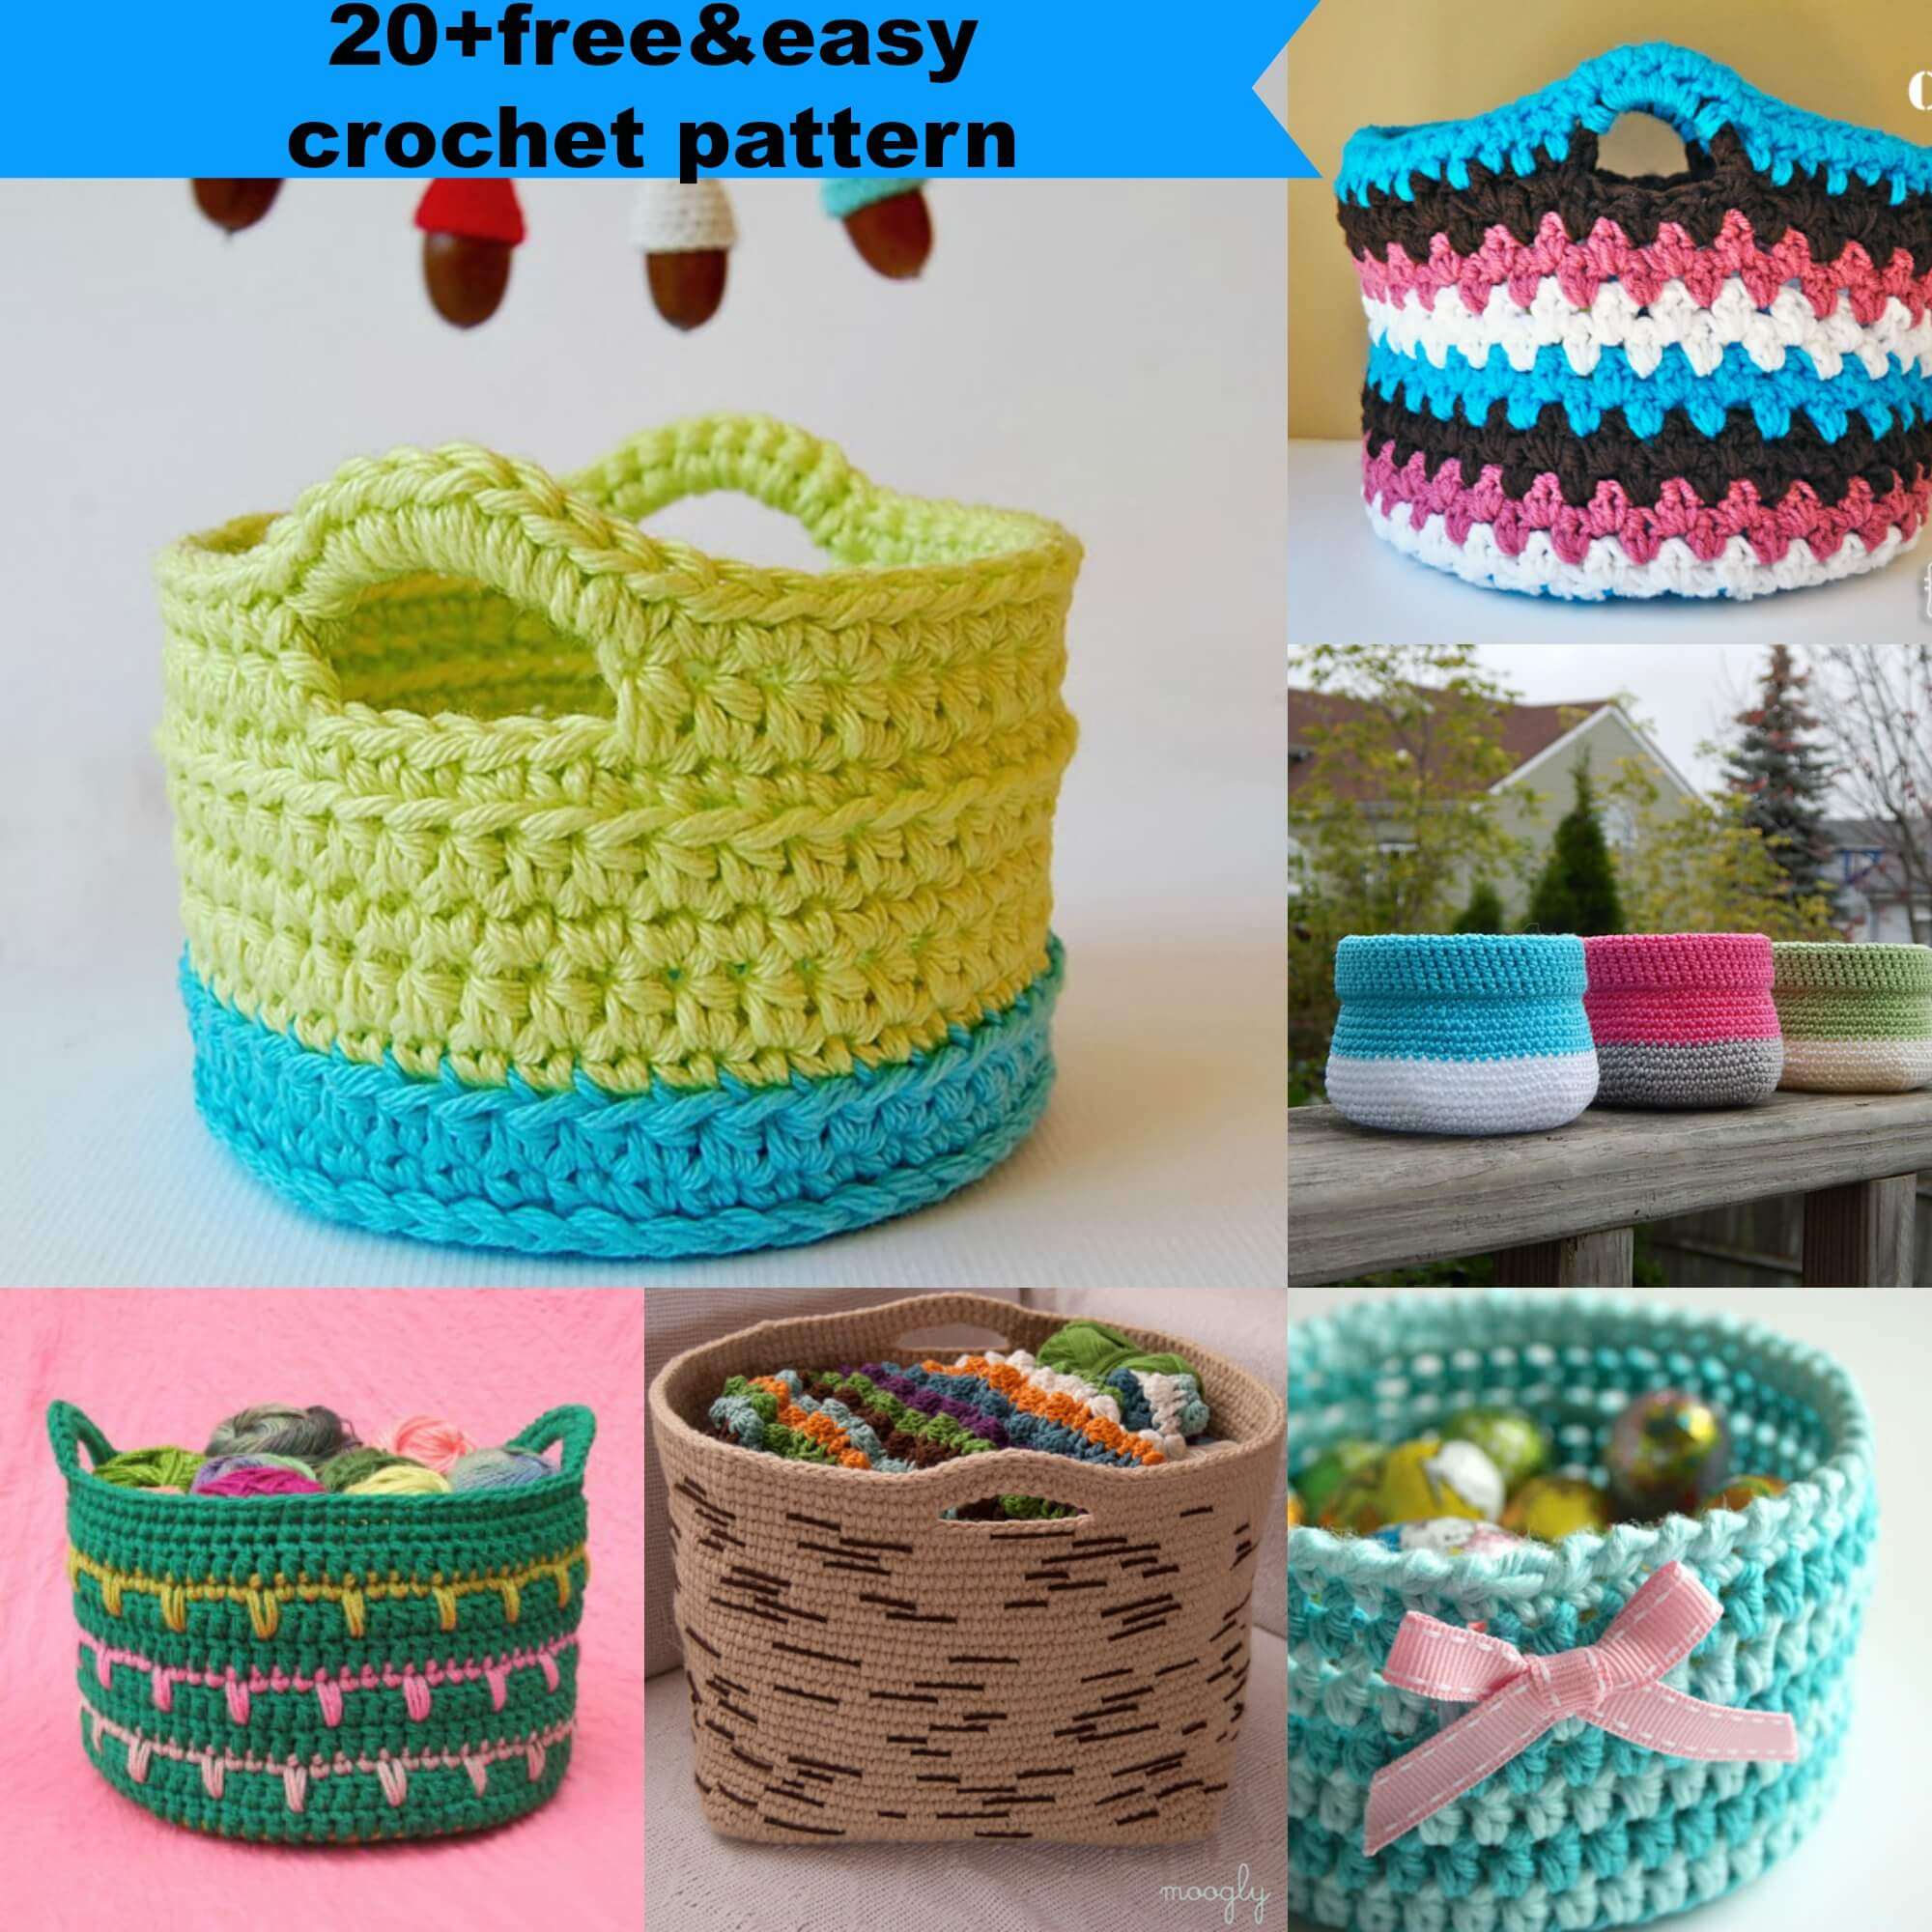 23 Free Easy Crochet Baskets Patterns